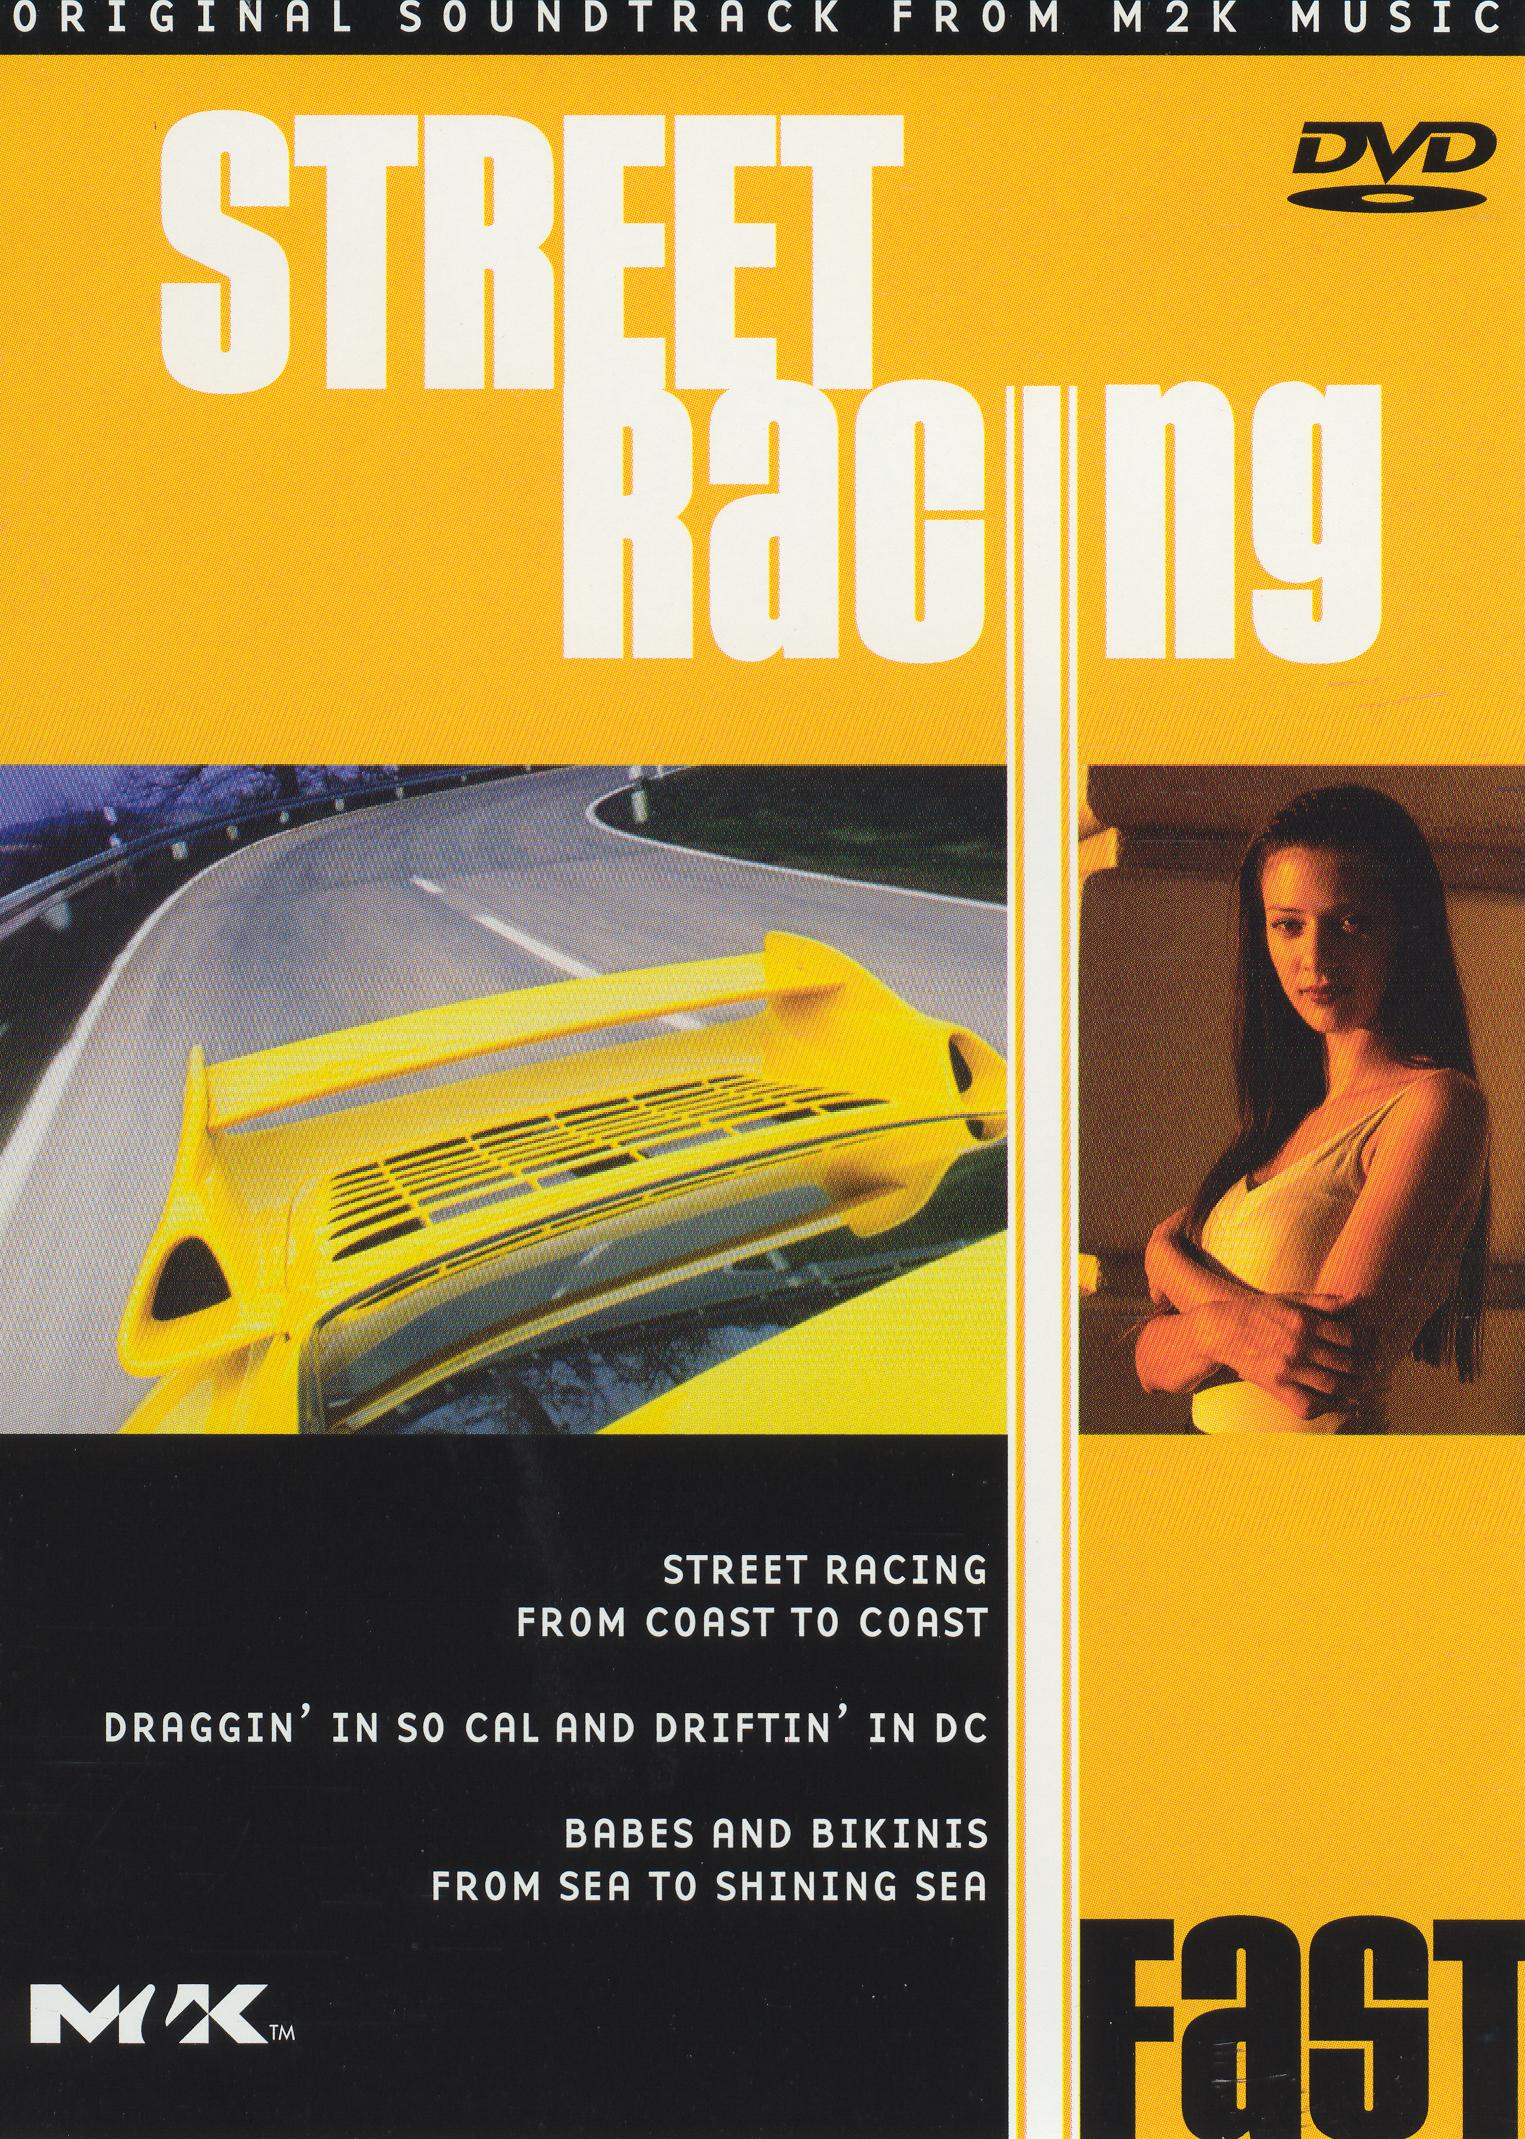 Street Racing, Vol. 4: Fast